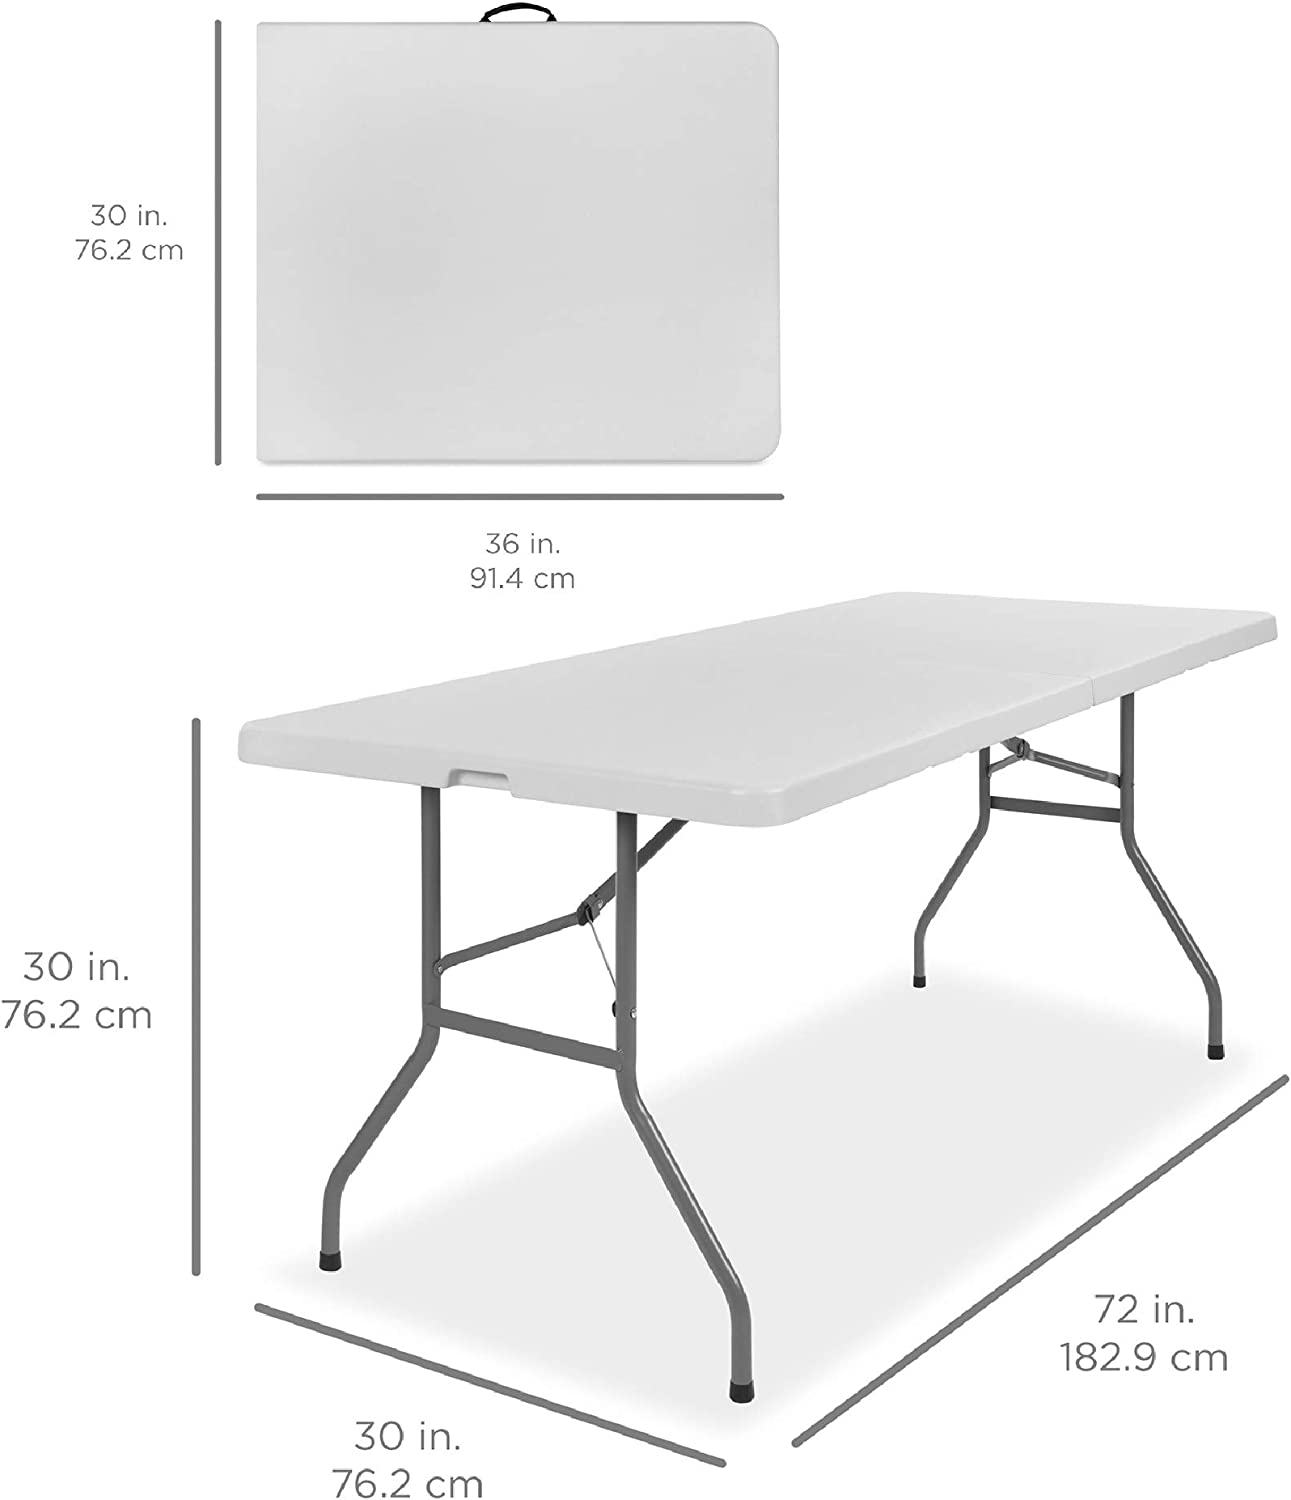 Best Choice Products 6ft Indoor Outdoor Heavy Duty Portable Folding Plastic Dining Table w/Handle, Lock for Picnic, Party, Camping - White: Garden & Outdoor